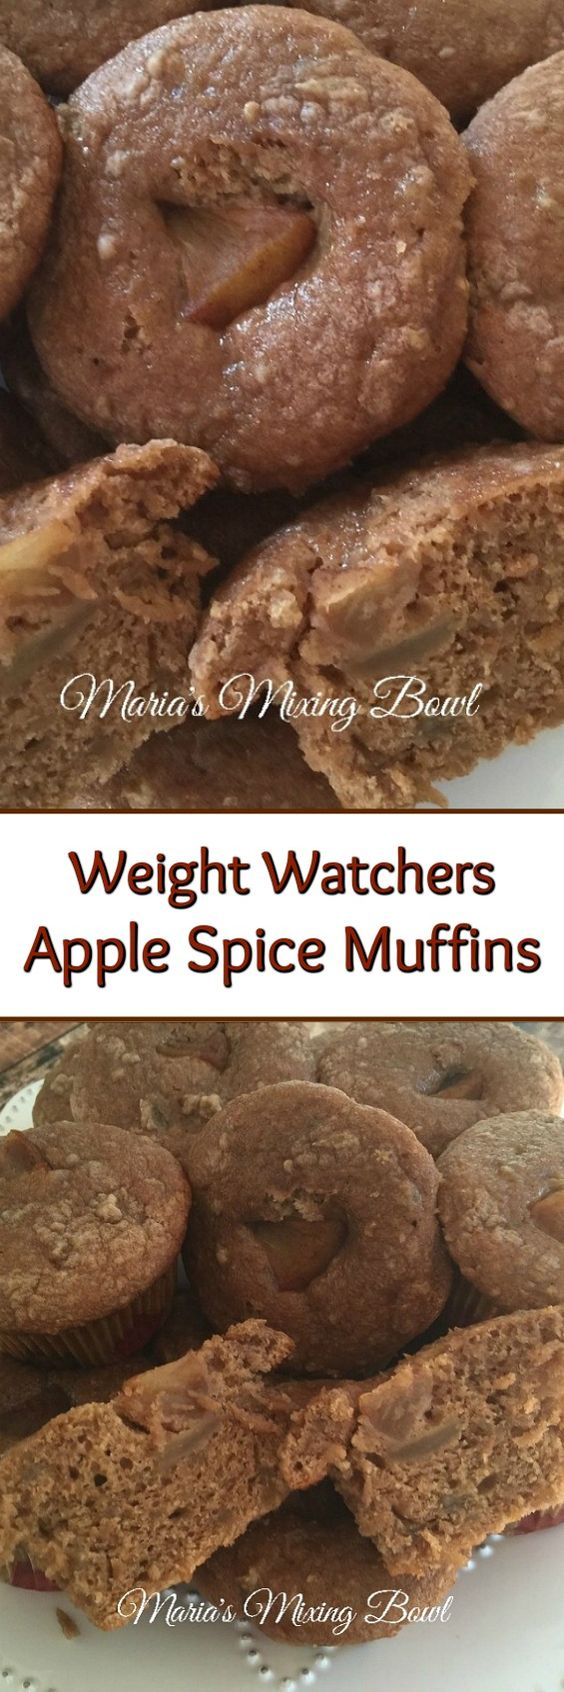 These Weight Watchers Apple Spice Muffins are so good.  I make these all the time. They are a perfect little breakfast treat or snack. The whole family loves these.